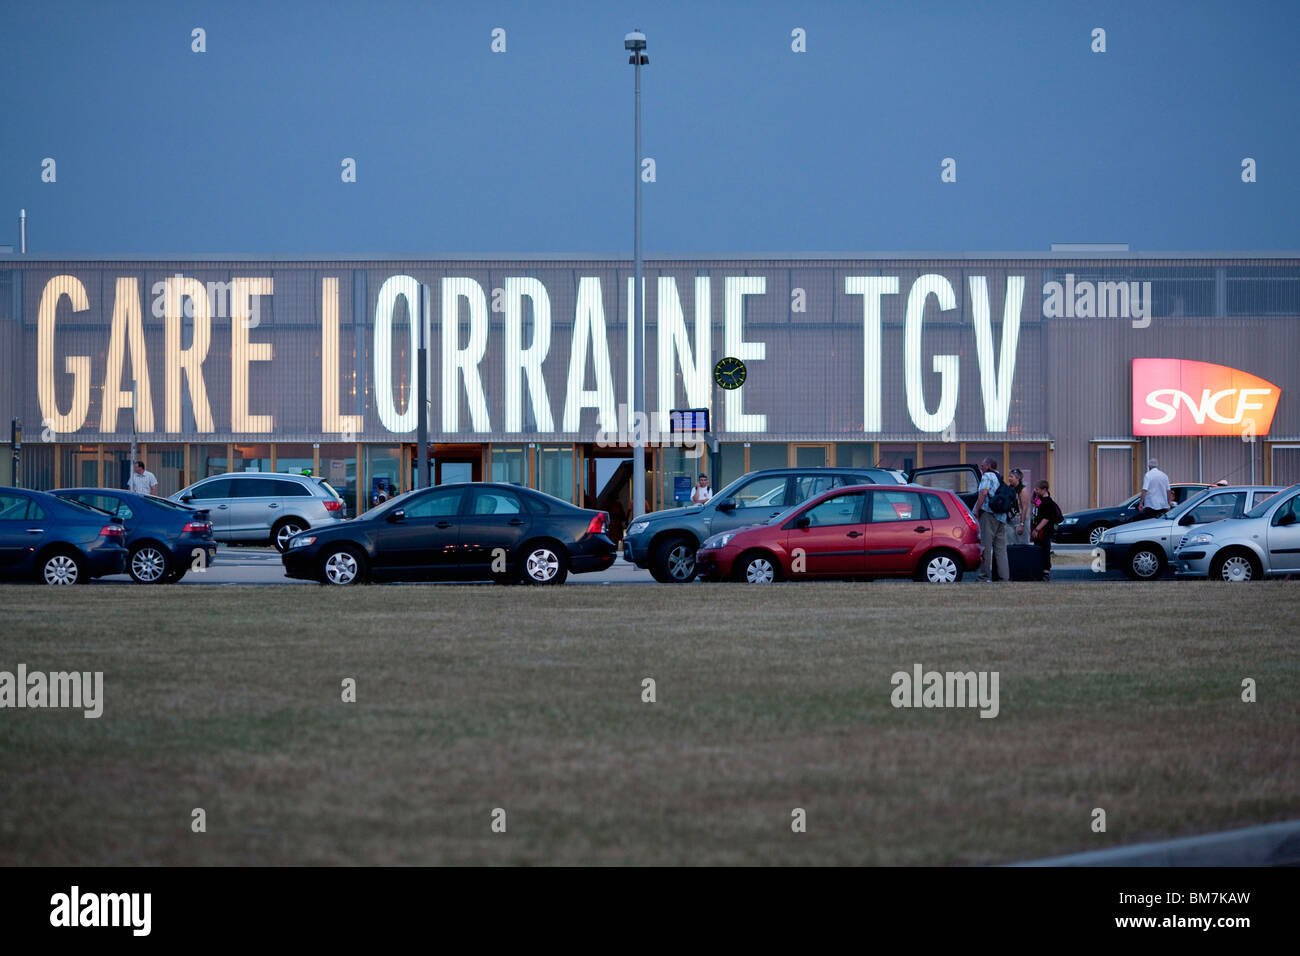 Lorraine TGV (high speed train) railway station - Stock Image